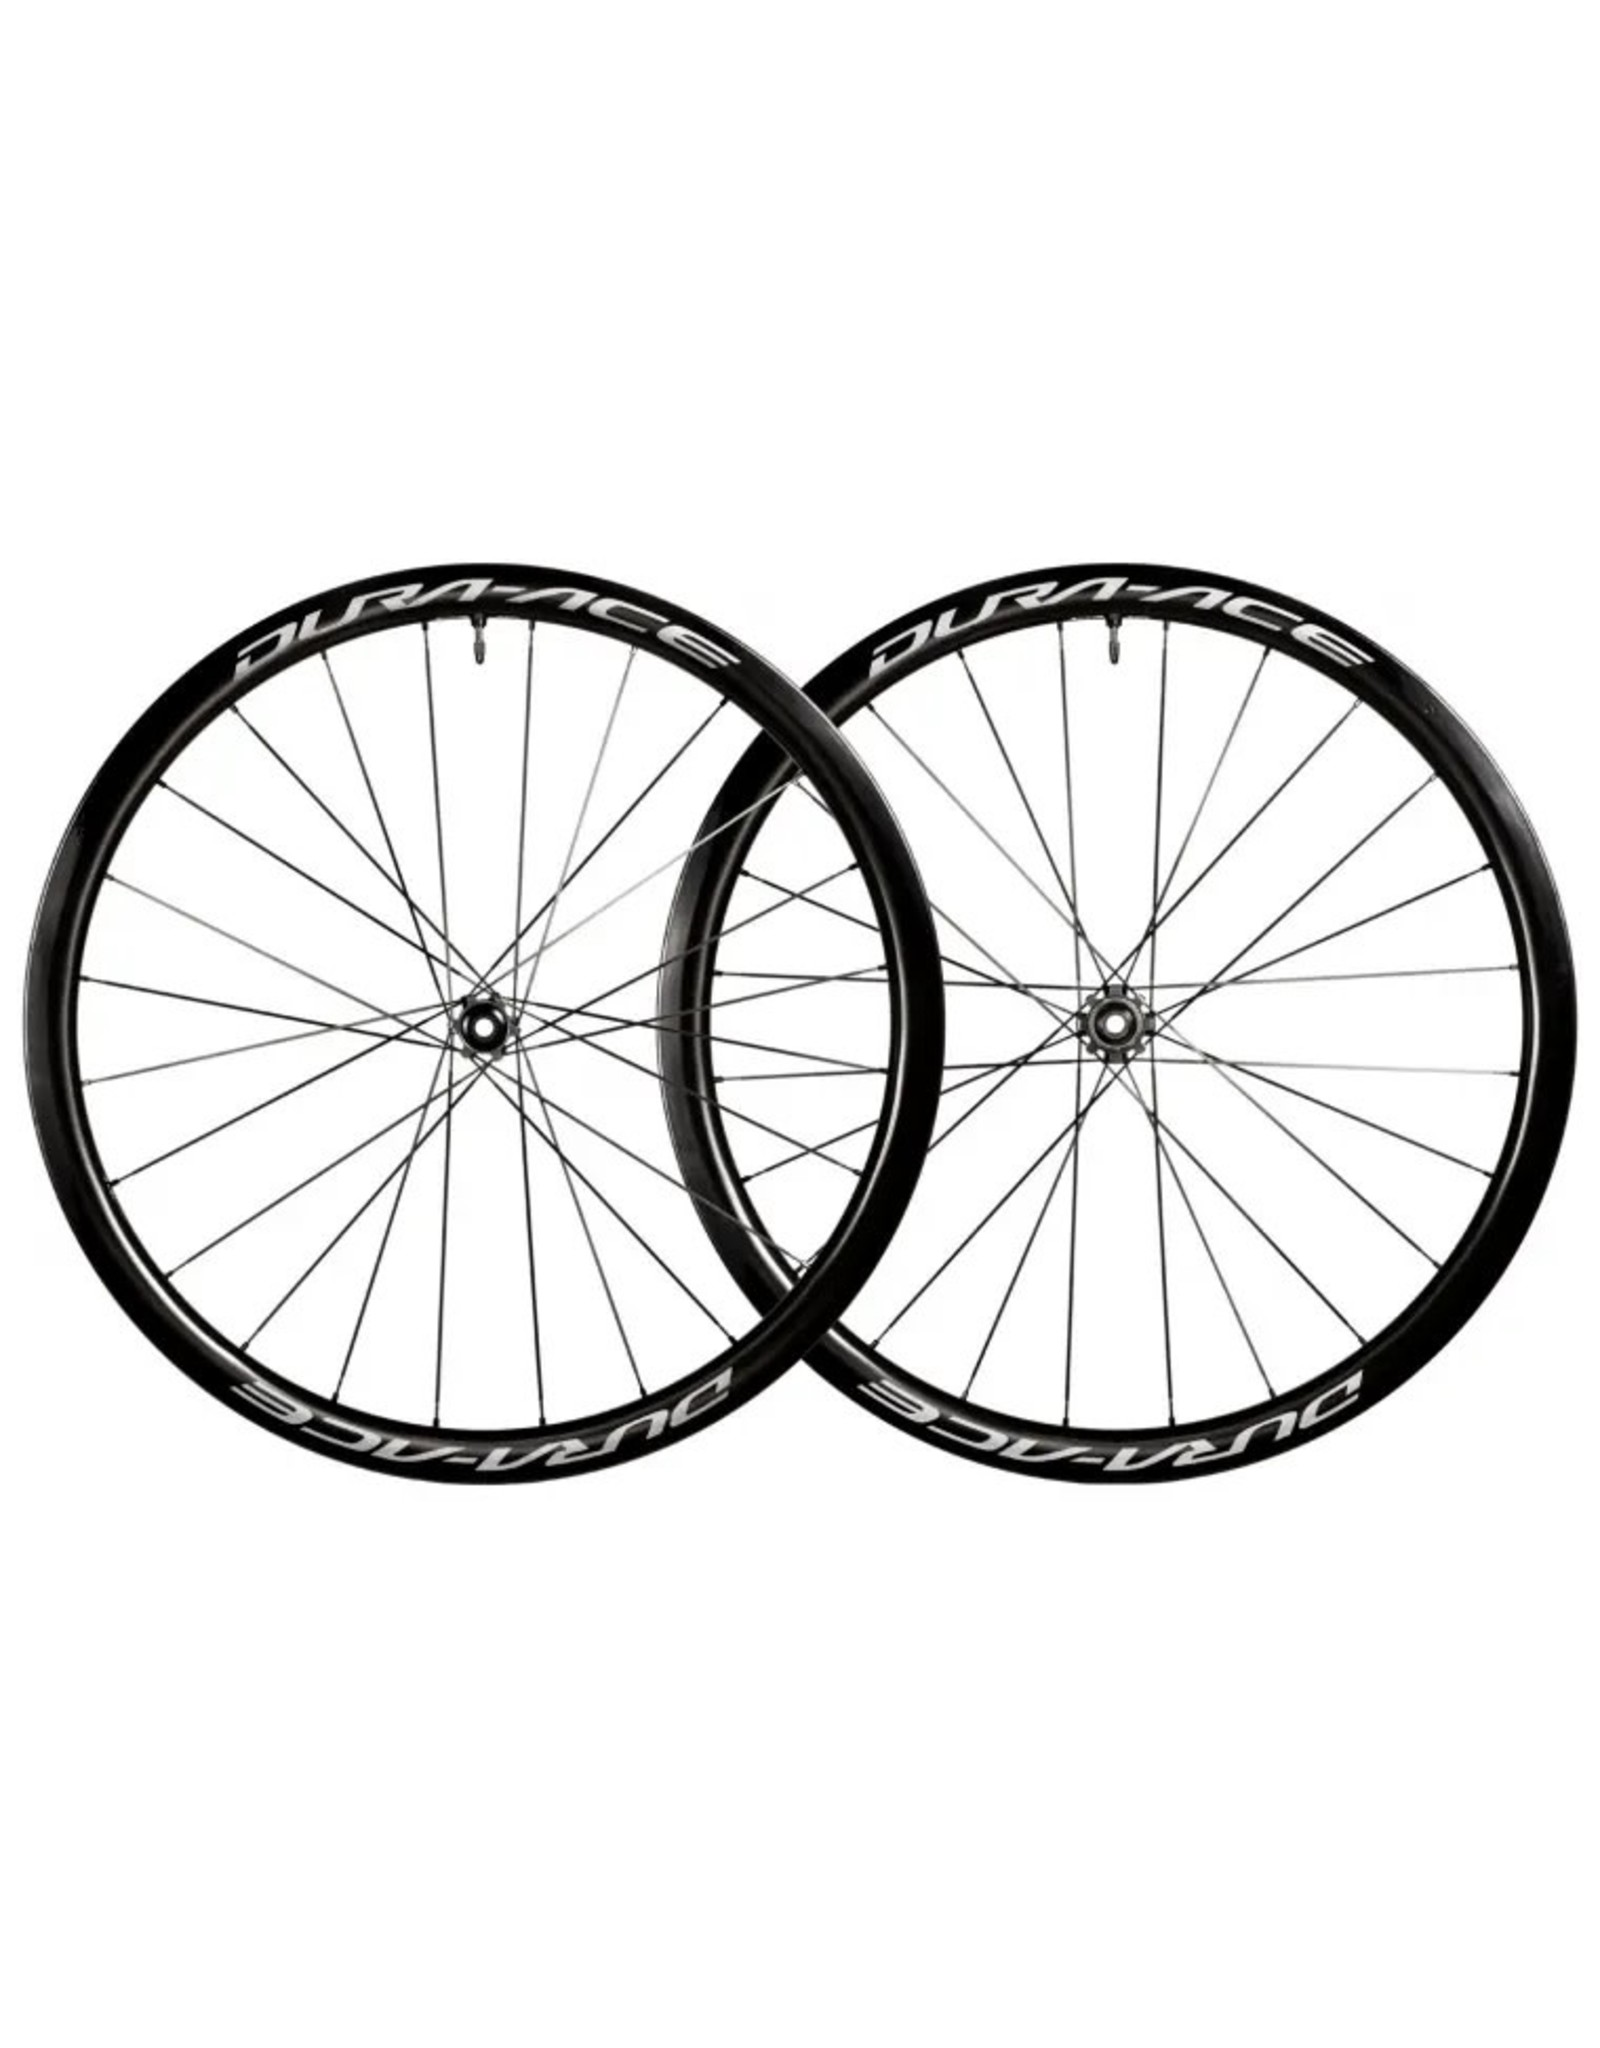 Shimano Dura-Ace WH-R9170-C40-TL 40mm Carbon Clincher, CL DISC, PAIR